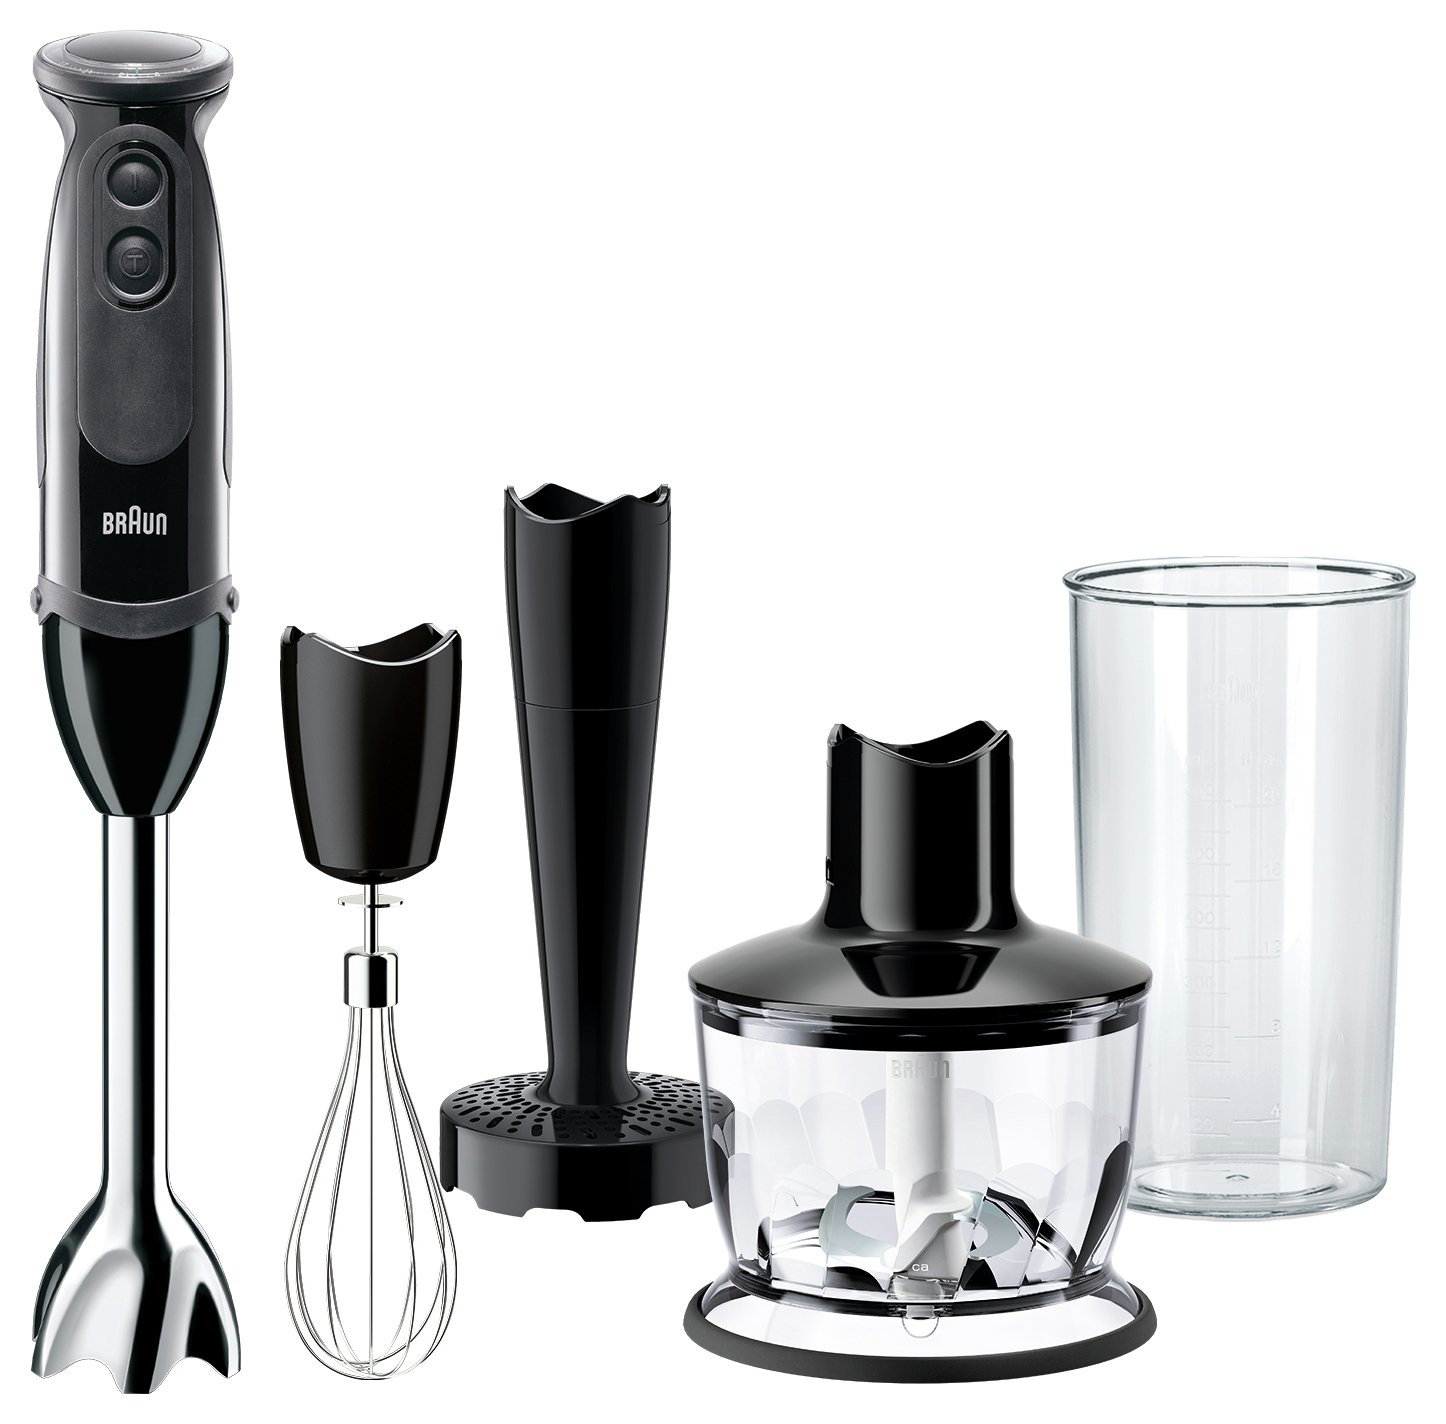 Image of Braun - MQ5137 - Hand Blender